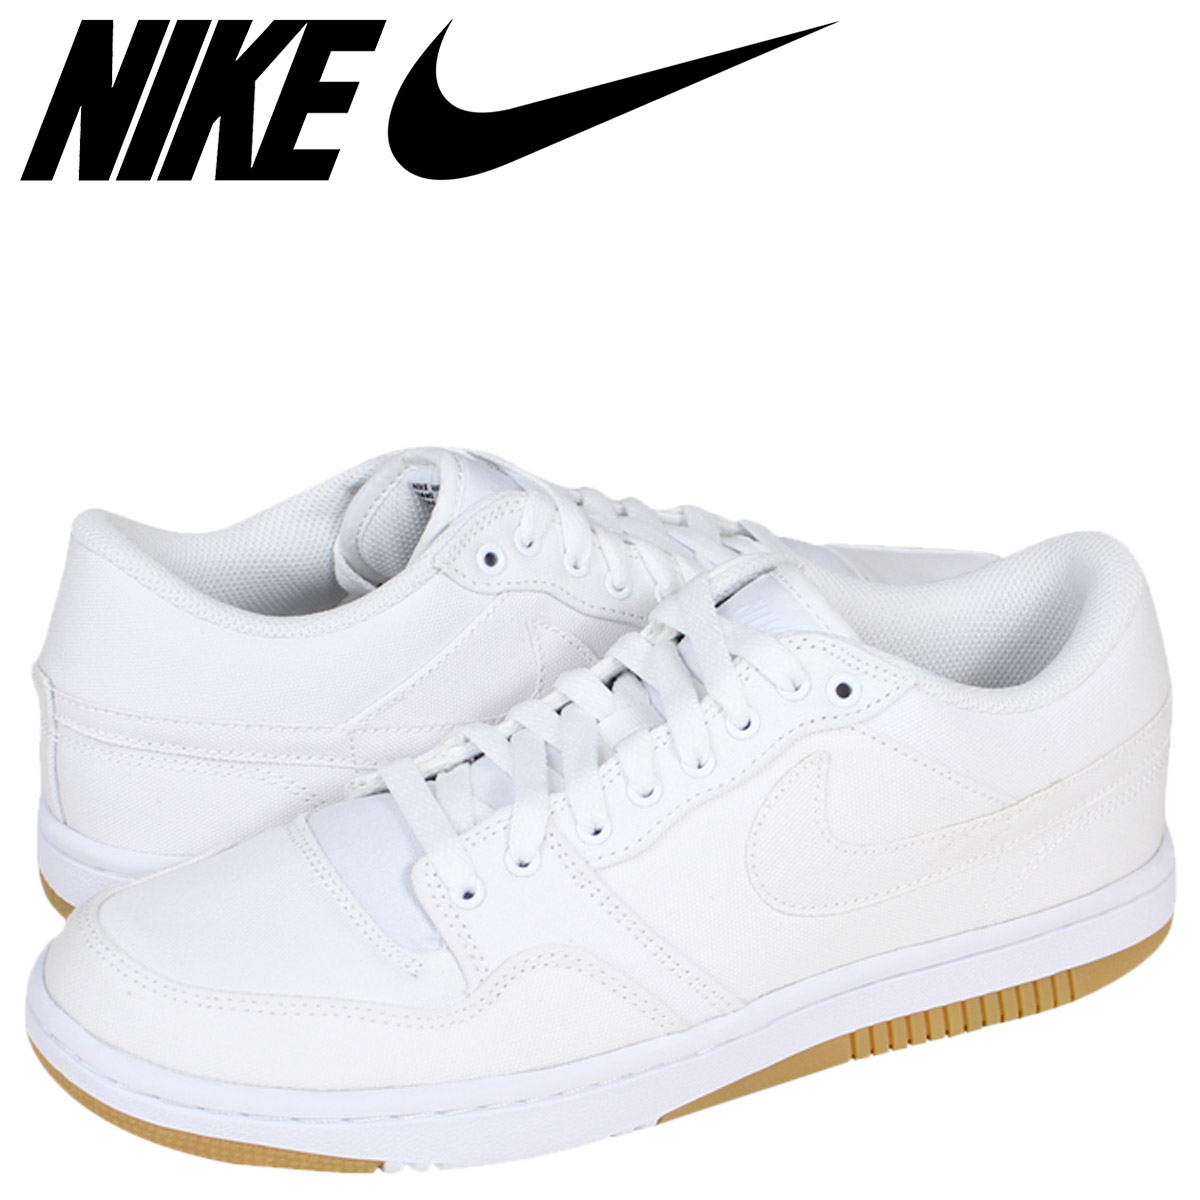 df35ab142340 NIKE Nike Court force sneakers COURT FORCE LOW Court force Lo 313561-119  white mens